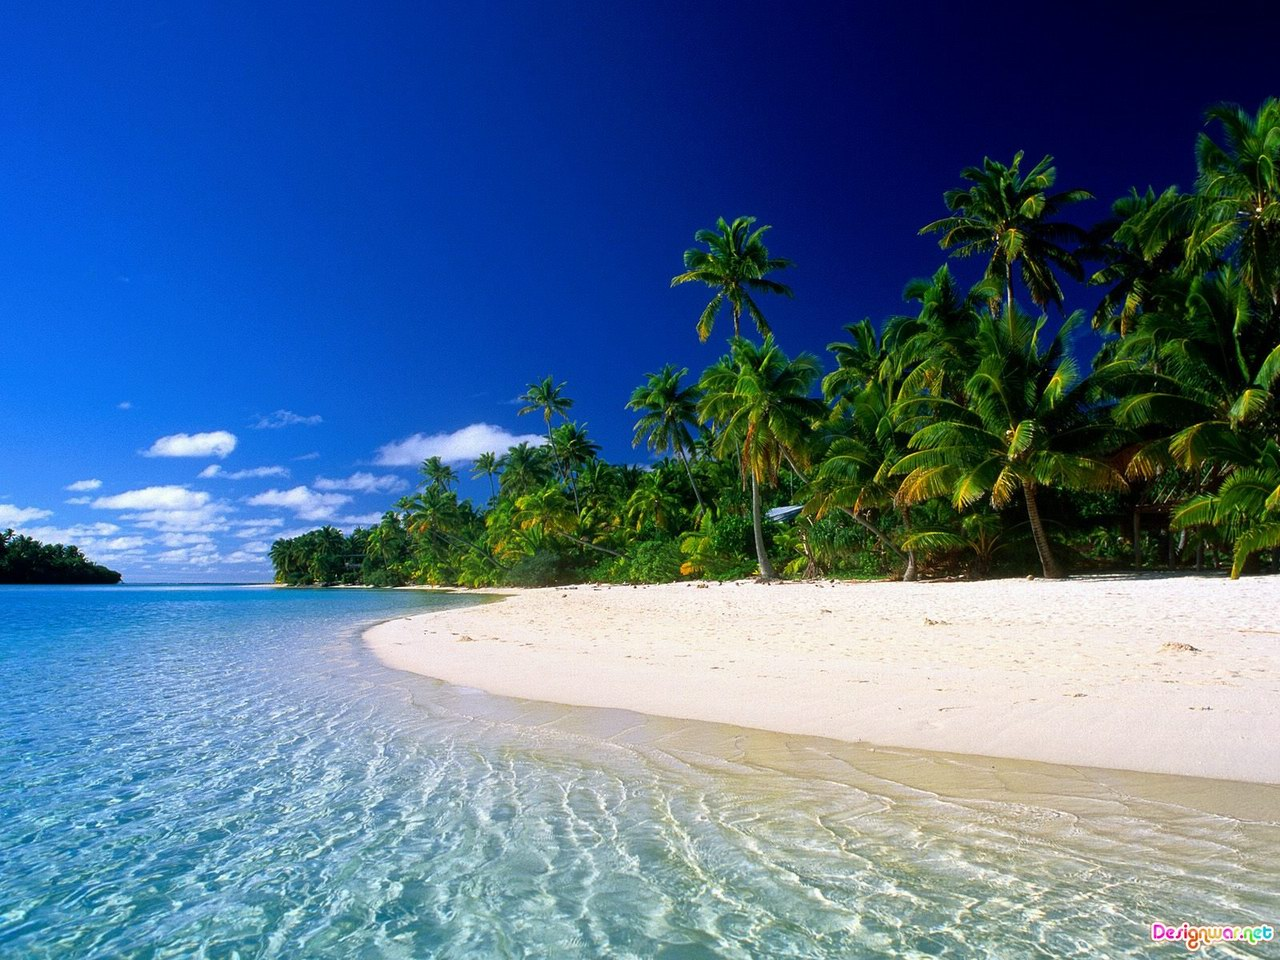 Tropical Beach desktop Wallpaperjpg 1280x960